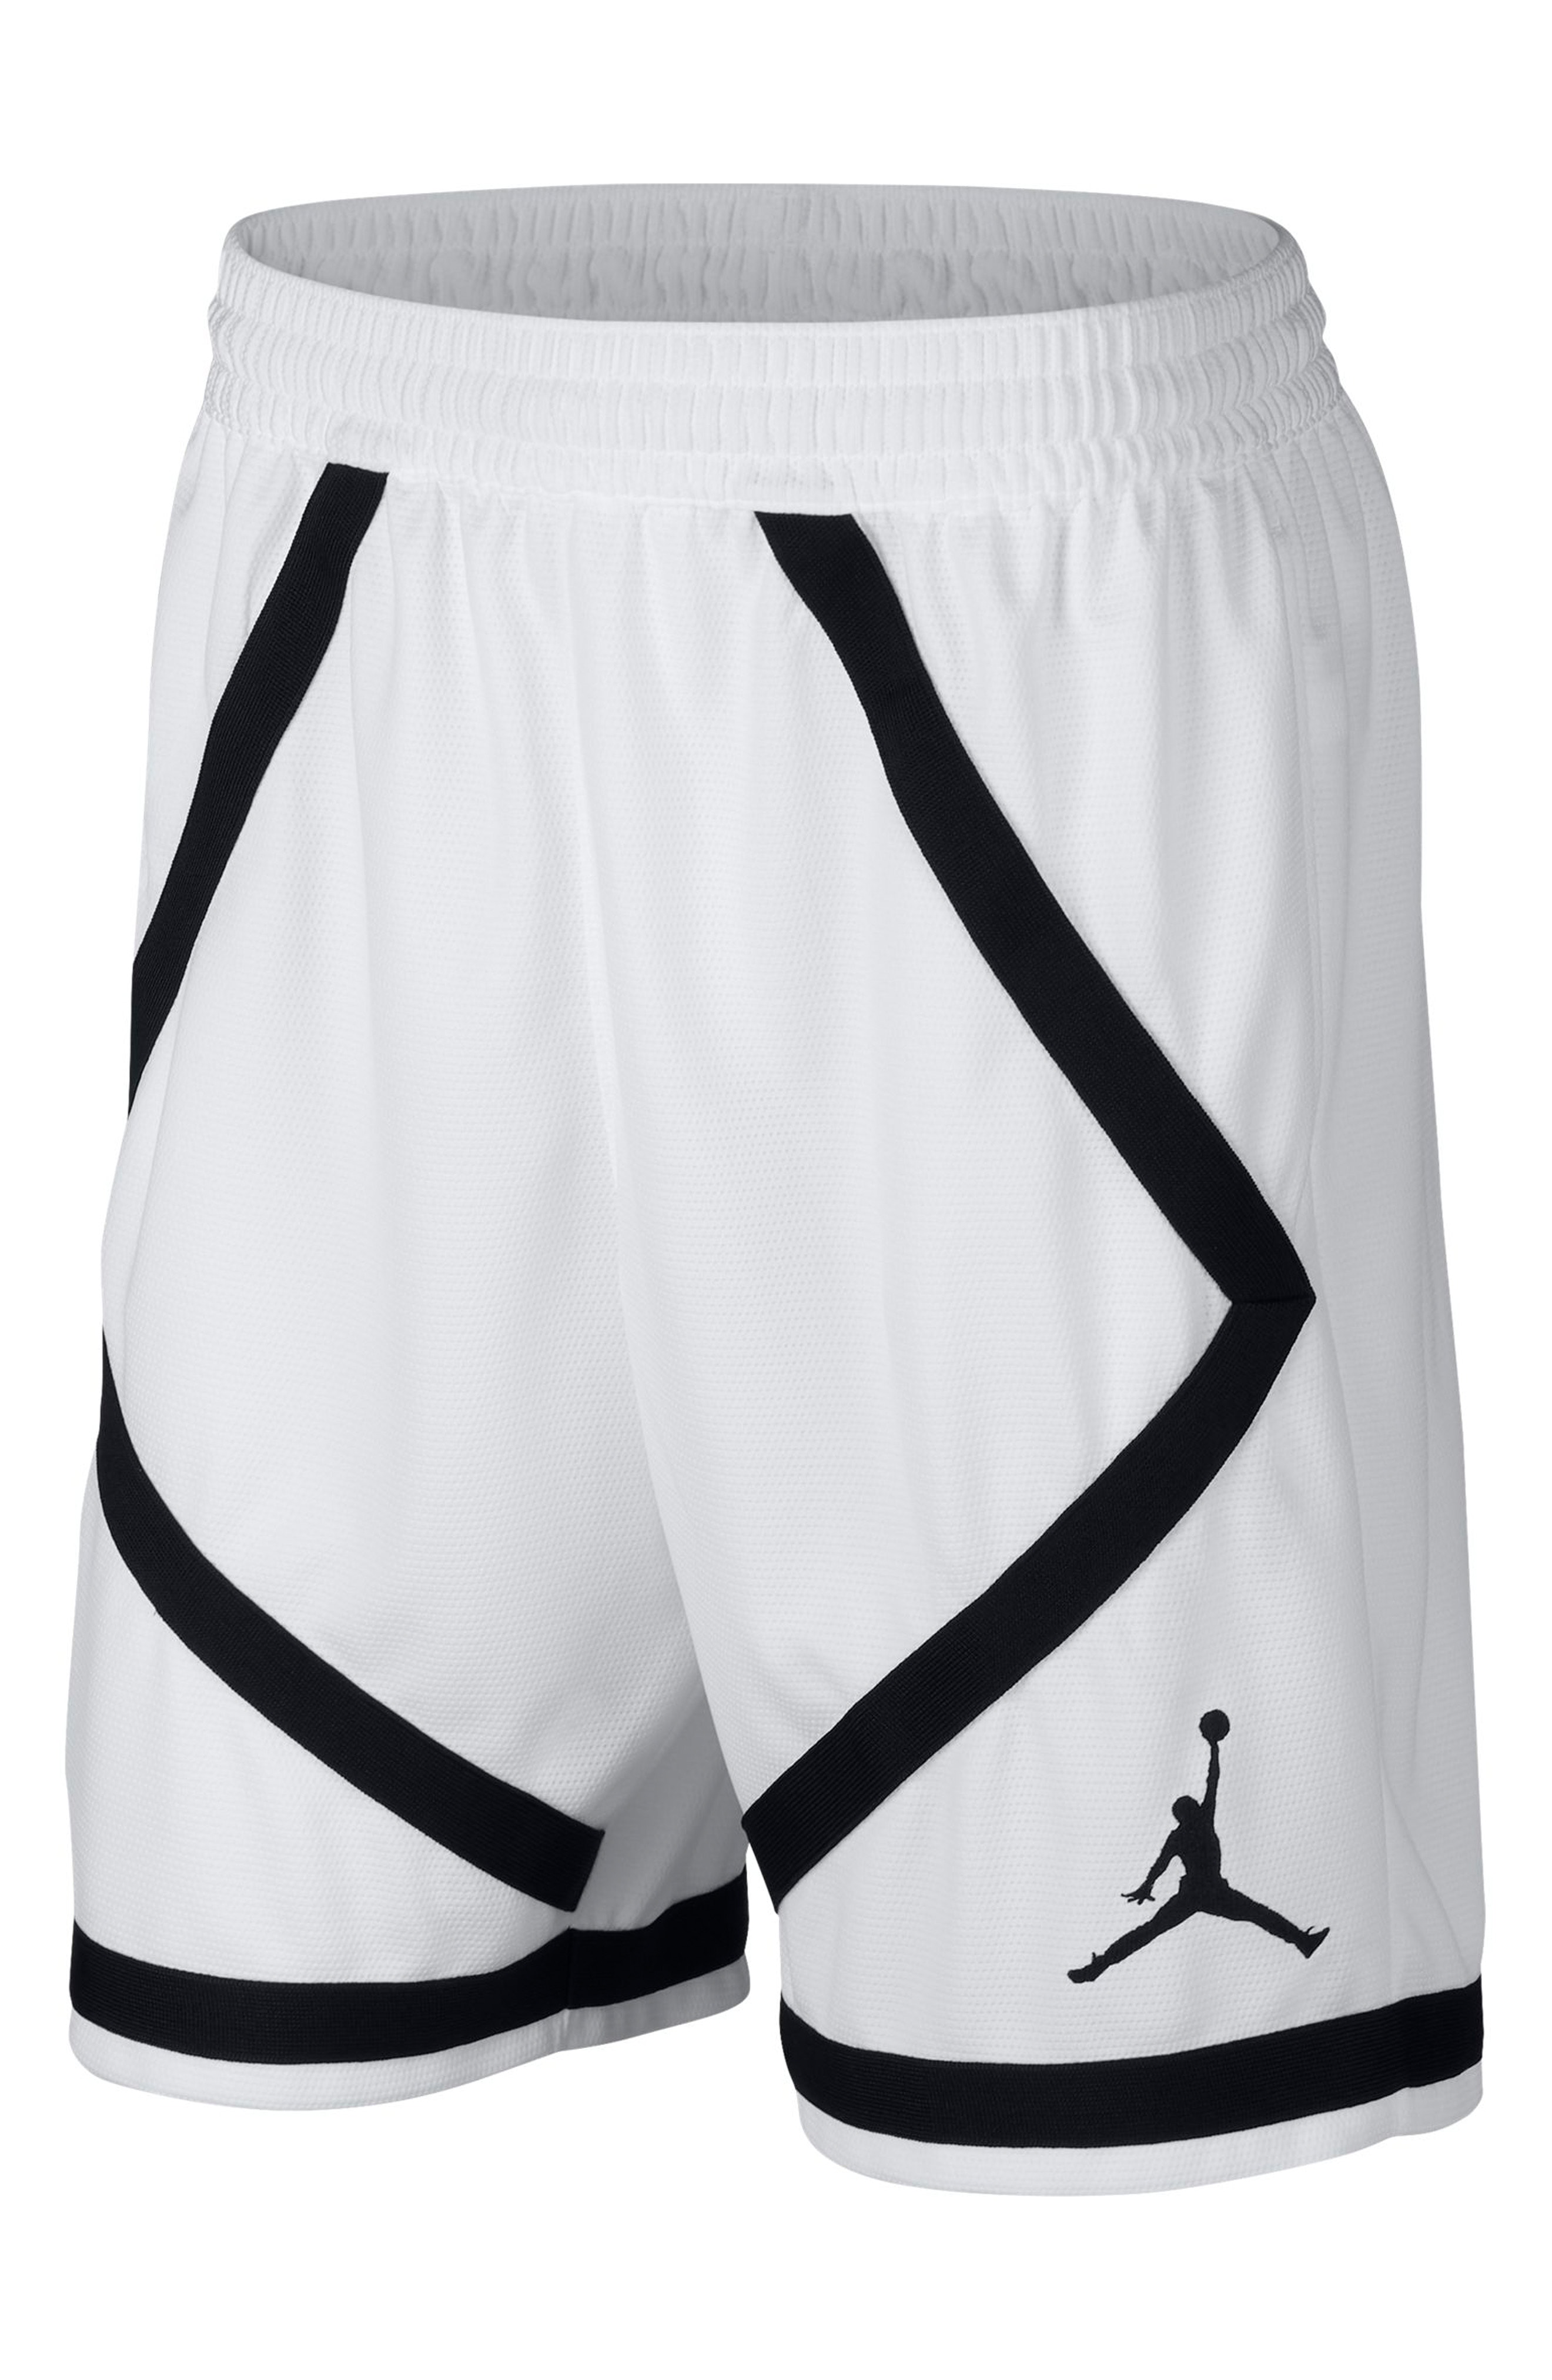 Jordan Dry Taped Basketball Shorts In White/ Black/ Black